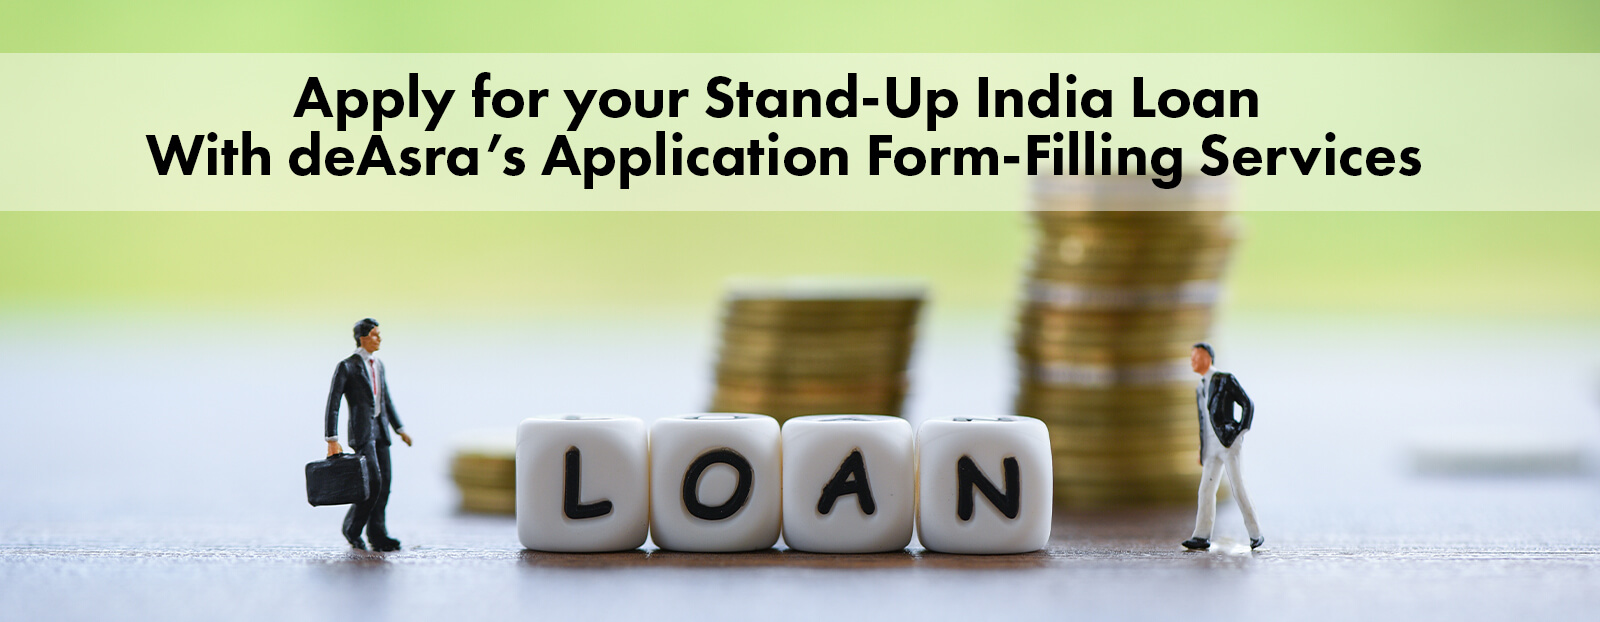 Apply for your Stand-Up India Loan With deAsra's Application Form-Filling Services